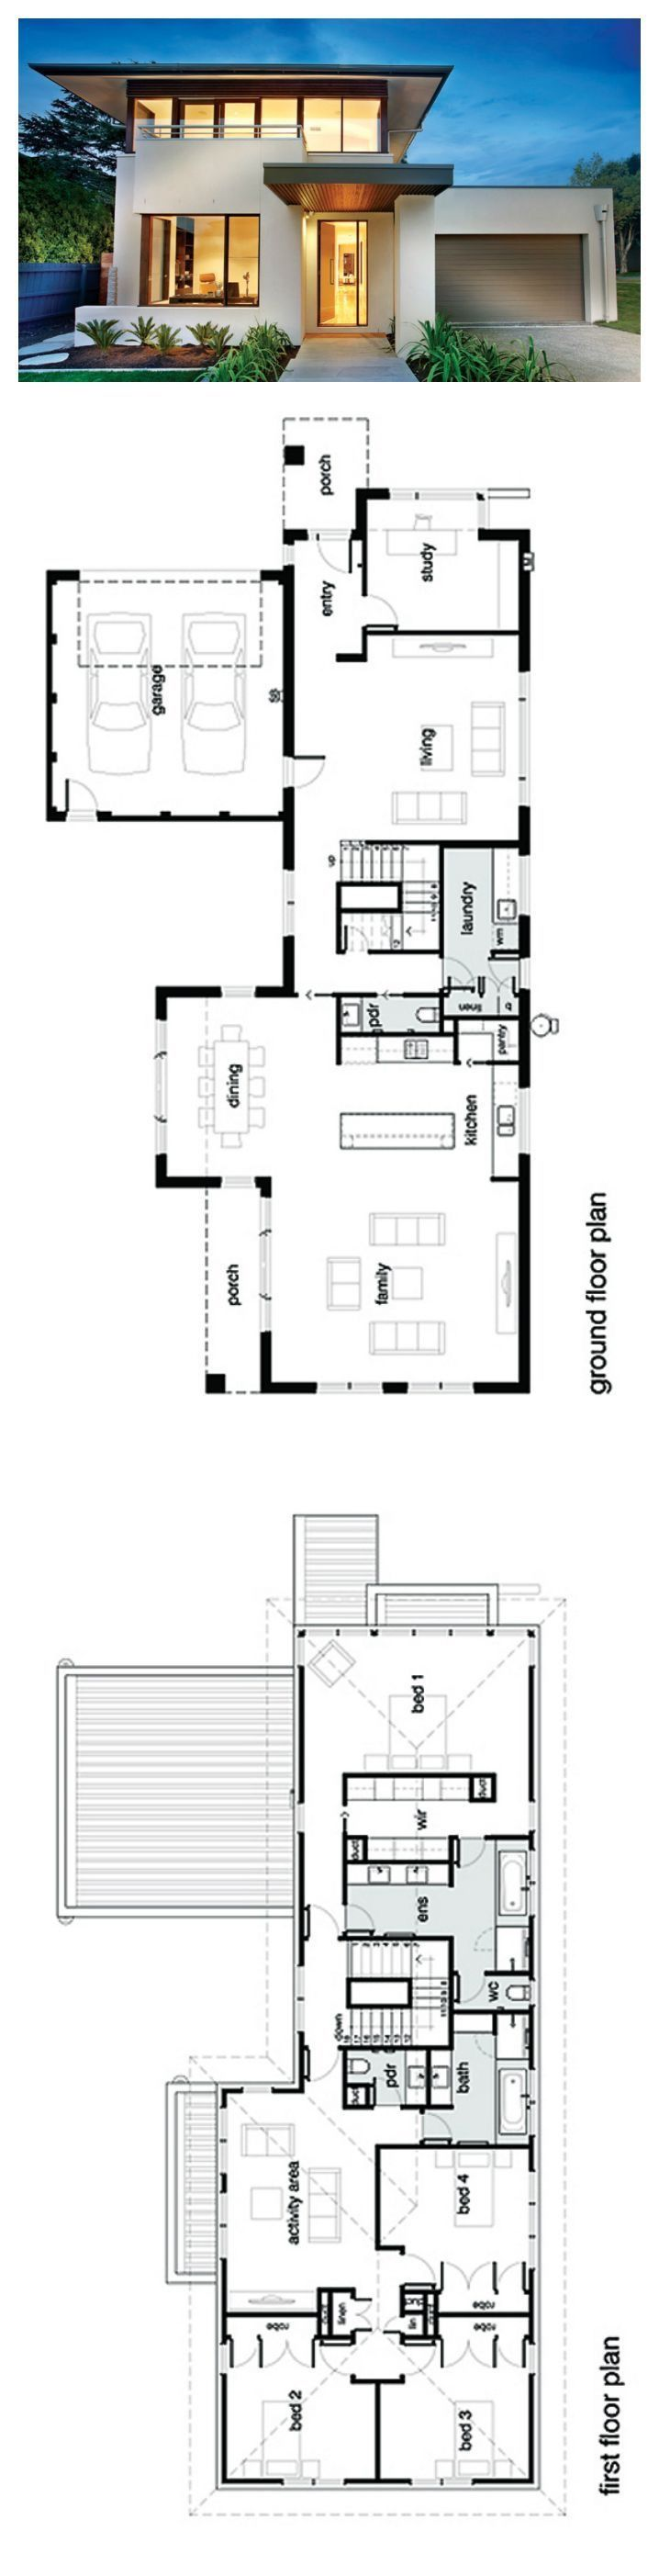 Two storey, 4 bedroom